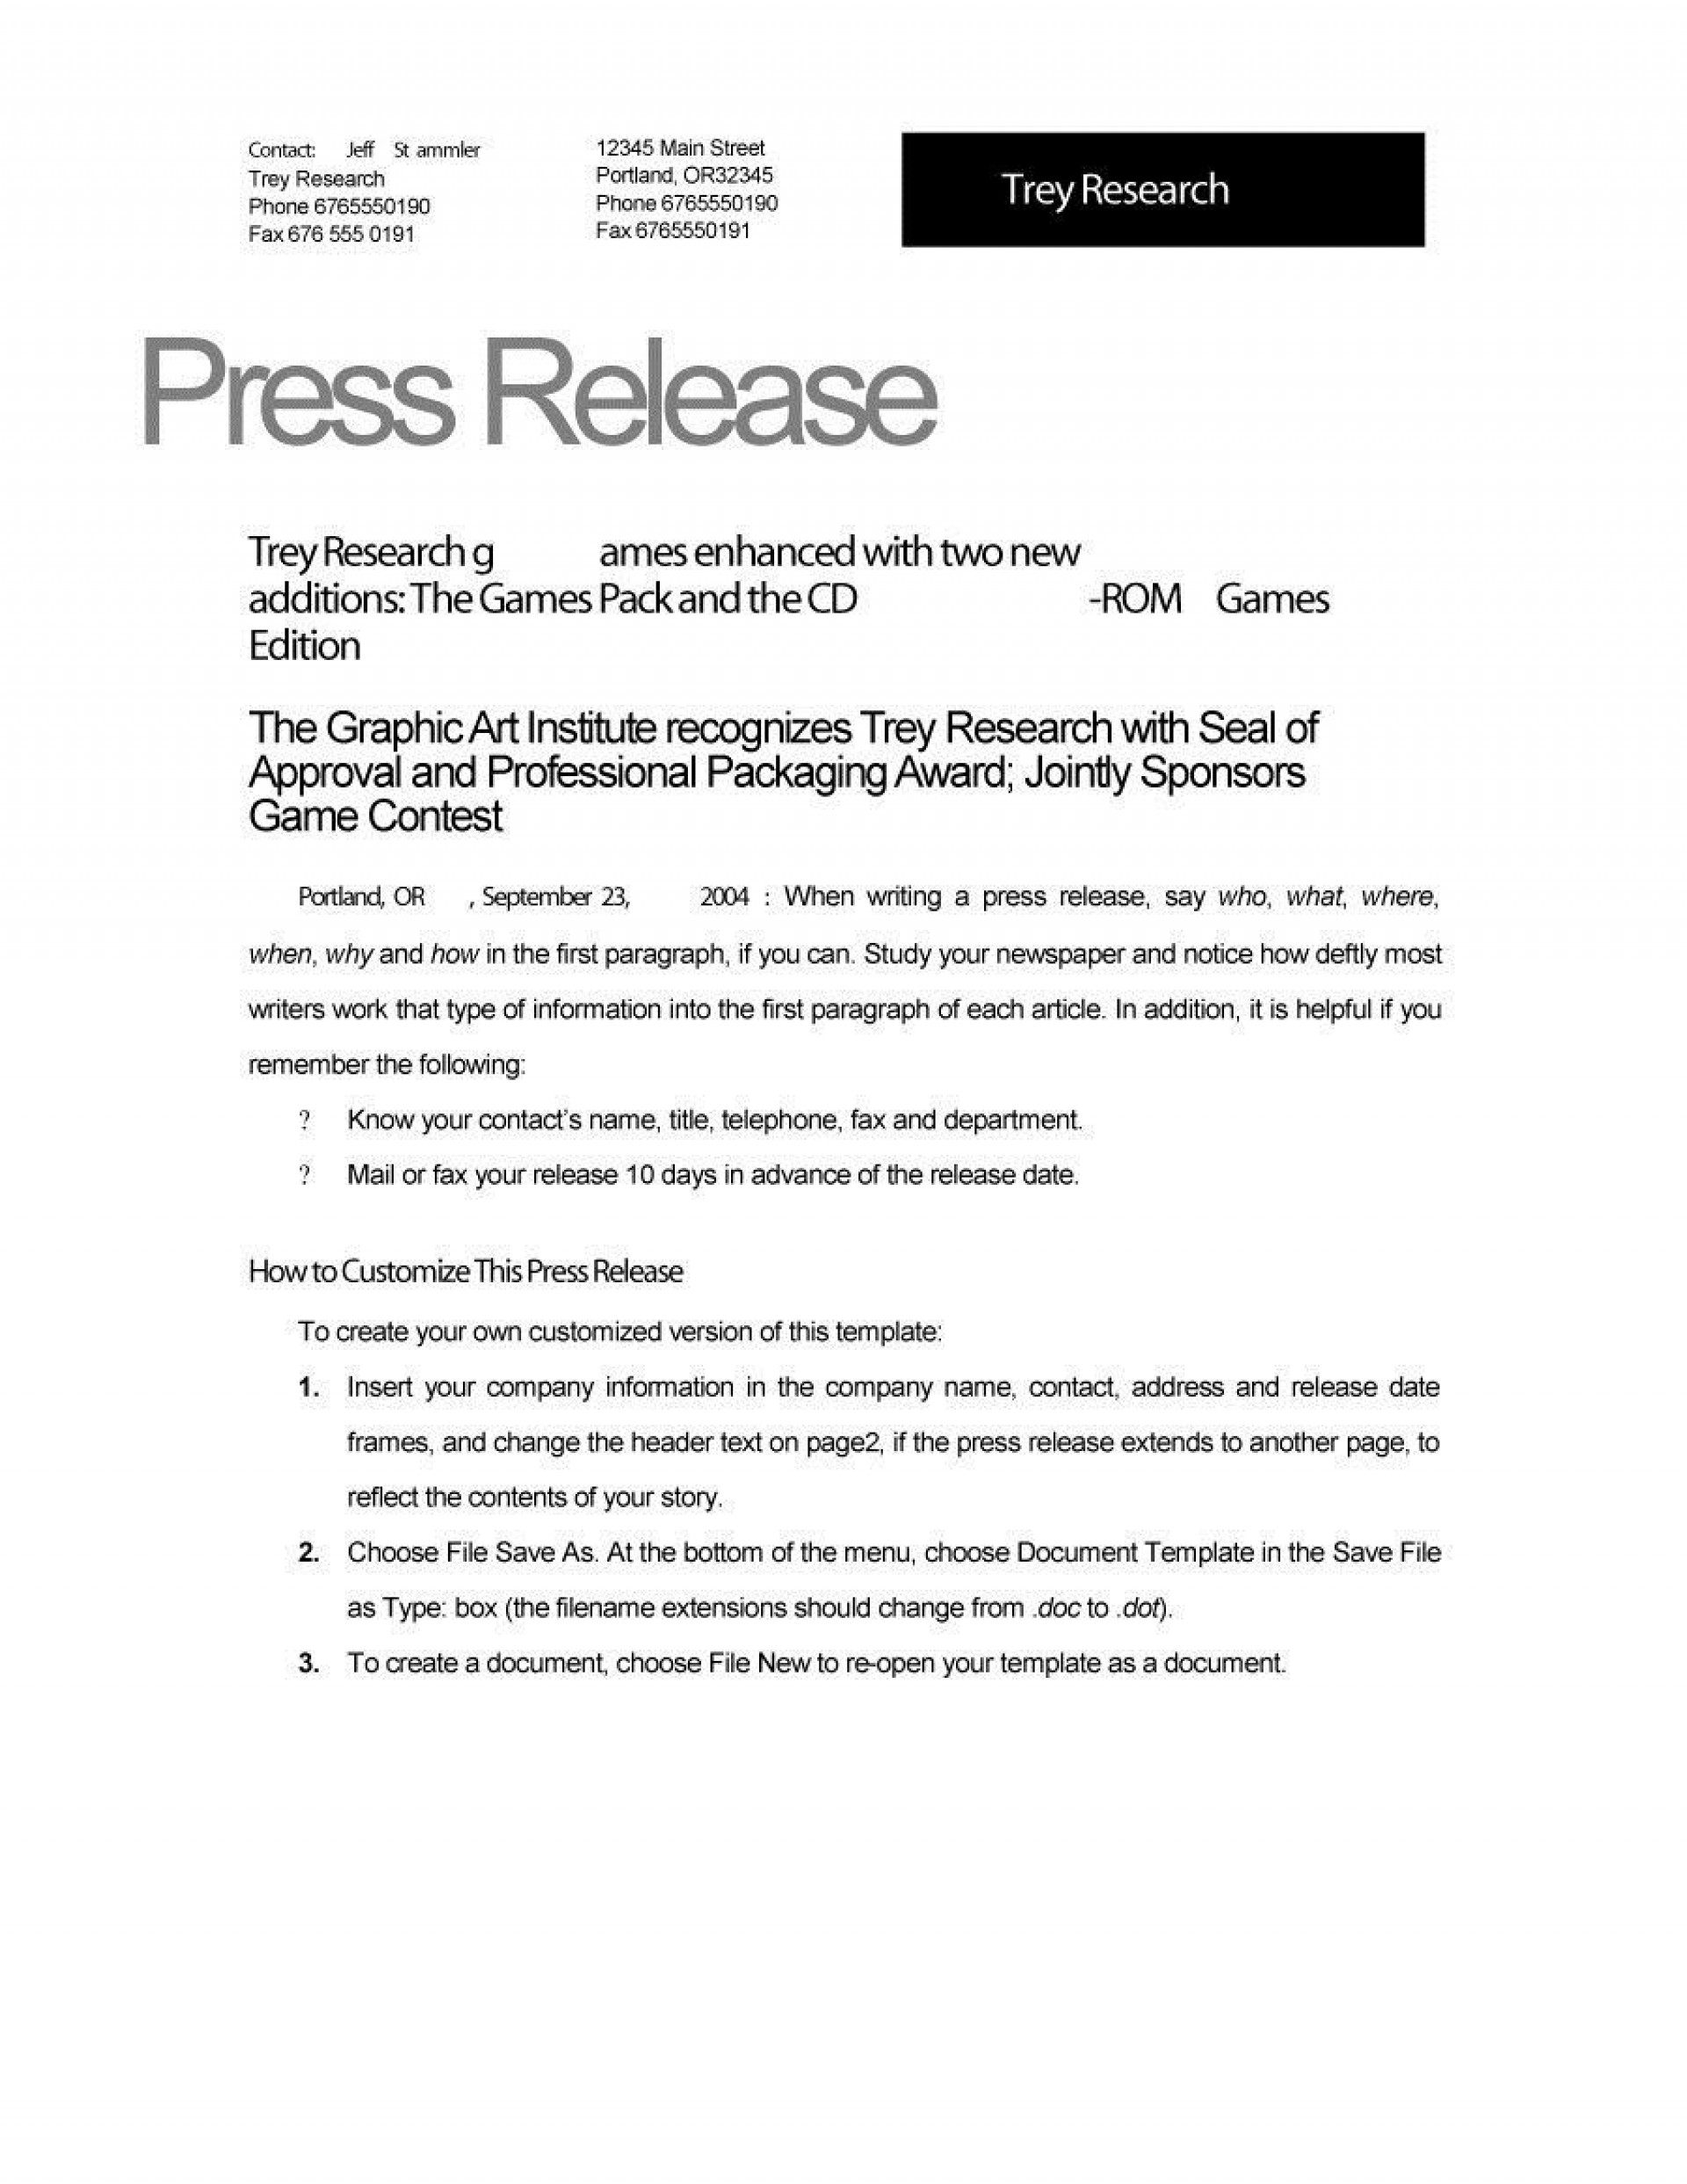 004 Magnificent Template For Pres Release Idea  Boilerplate About Event Email1920